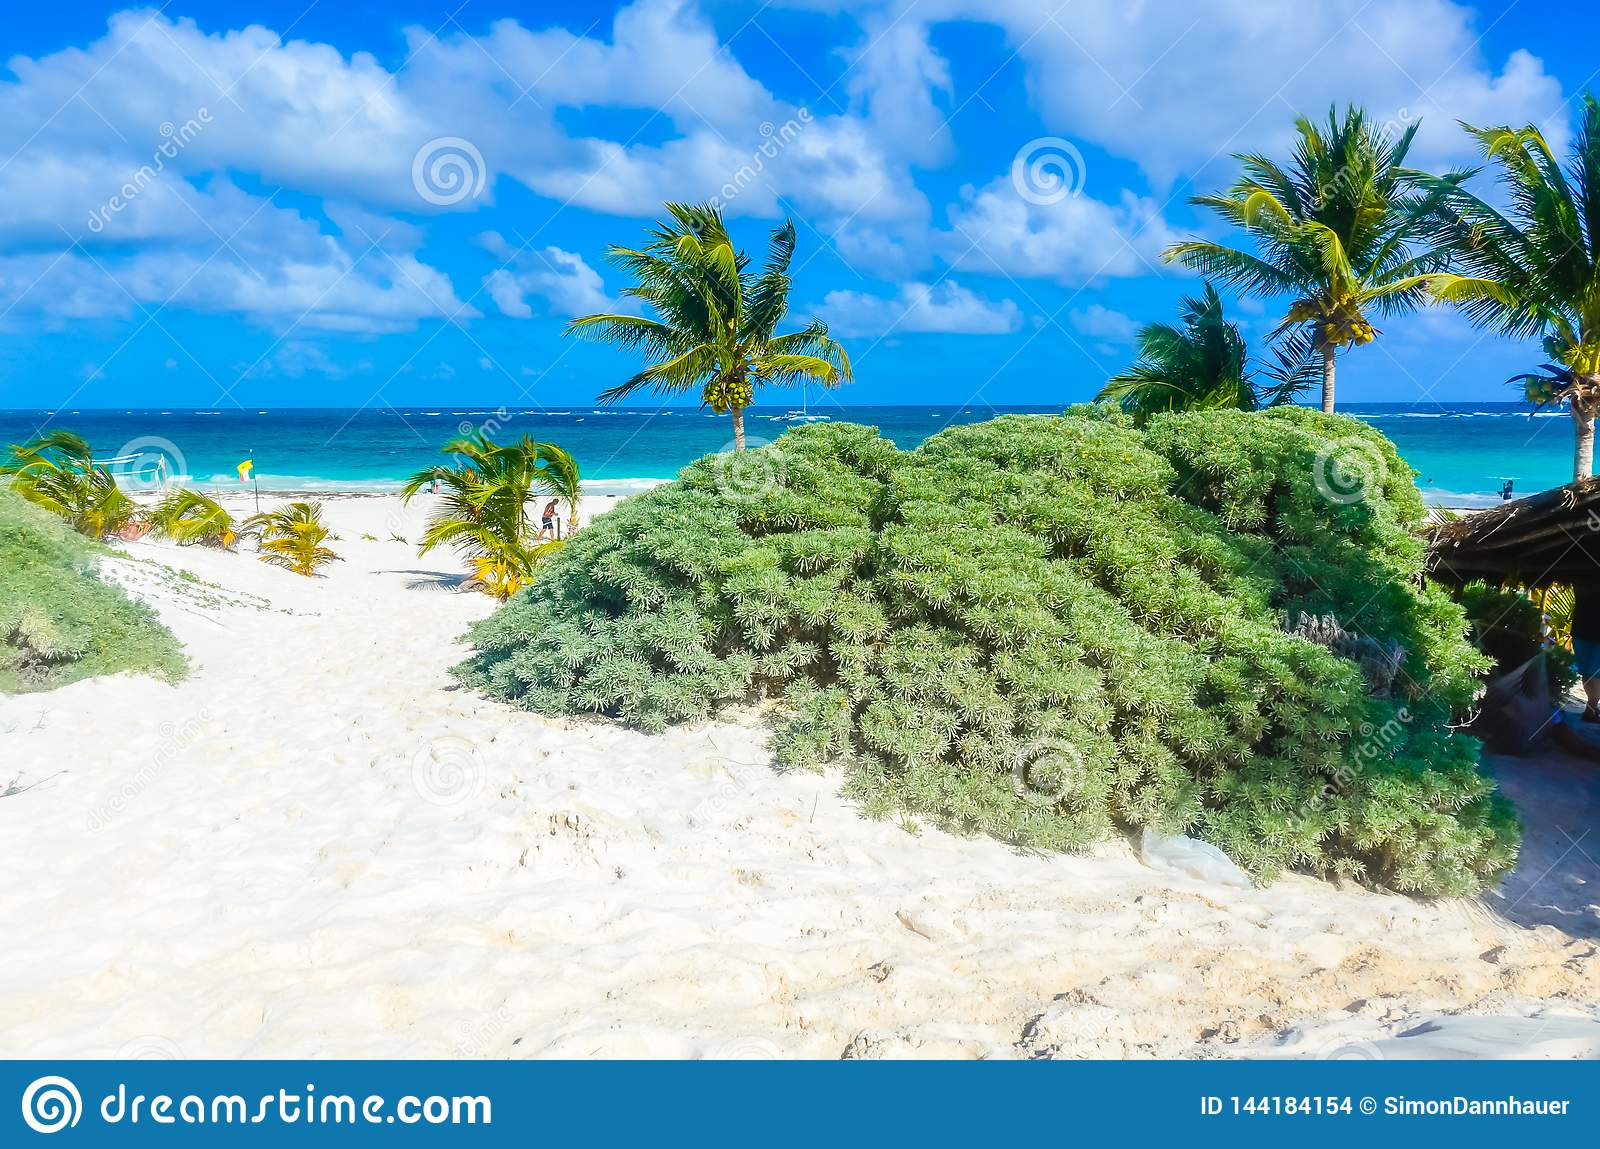 Paradise beach of Tulum, Quintana Roo, Mexico. Mayan ruins of Tulum at tropical coast